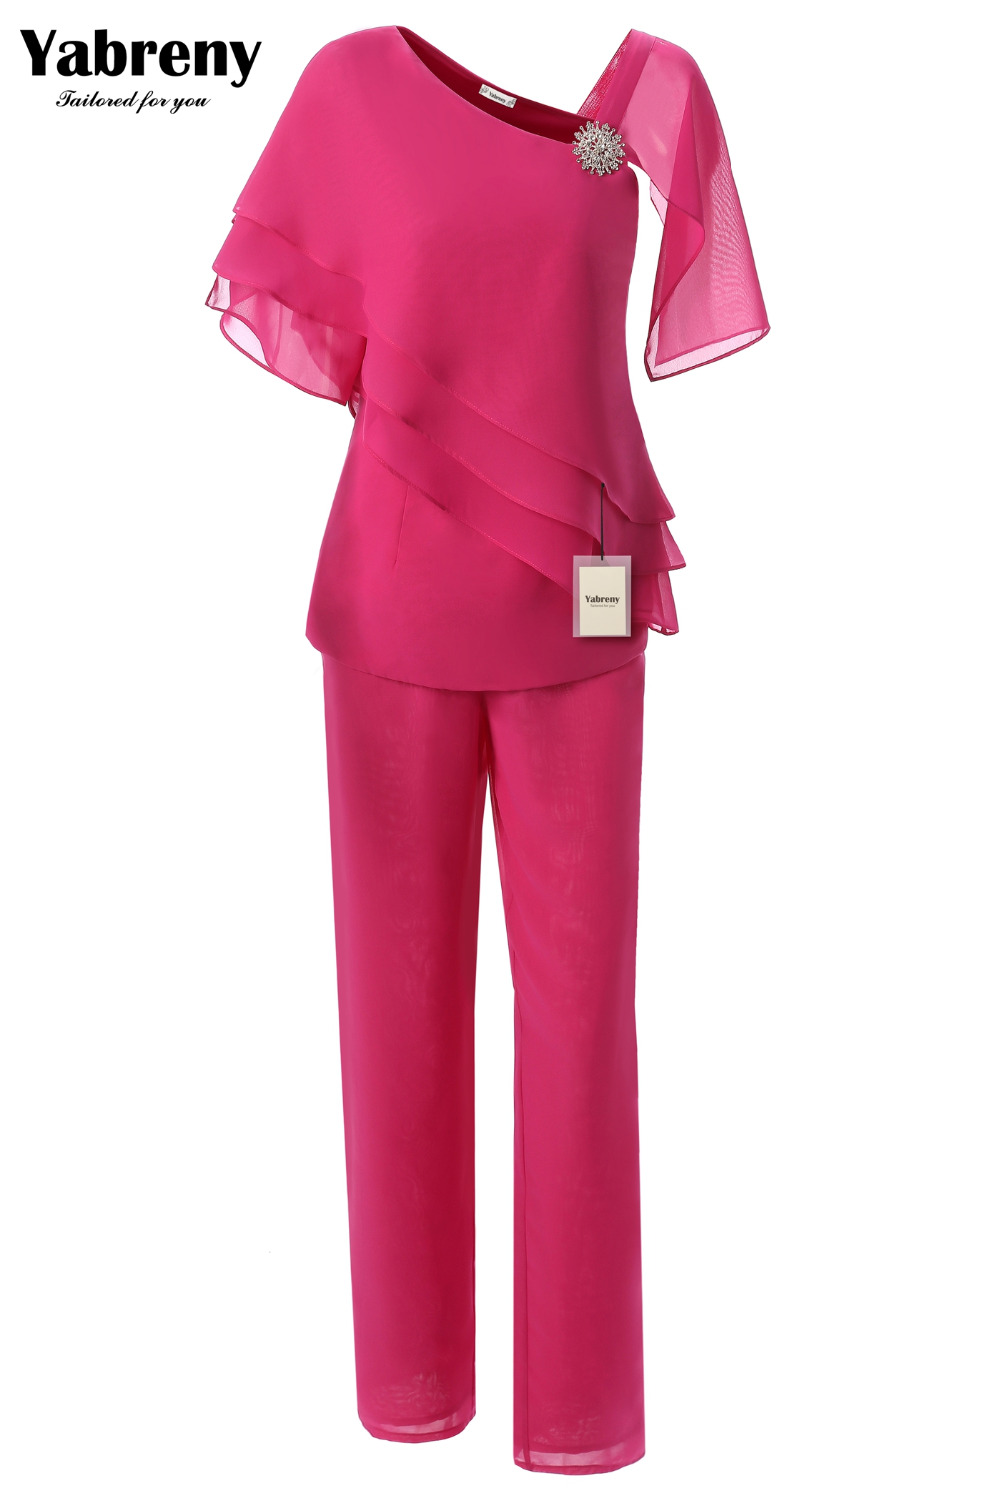 Yabreny Fashion Chiffon Mother of the Bride Pants suit 2PC Outfit Rose Red MT001702-1